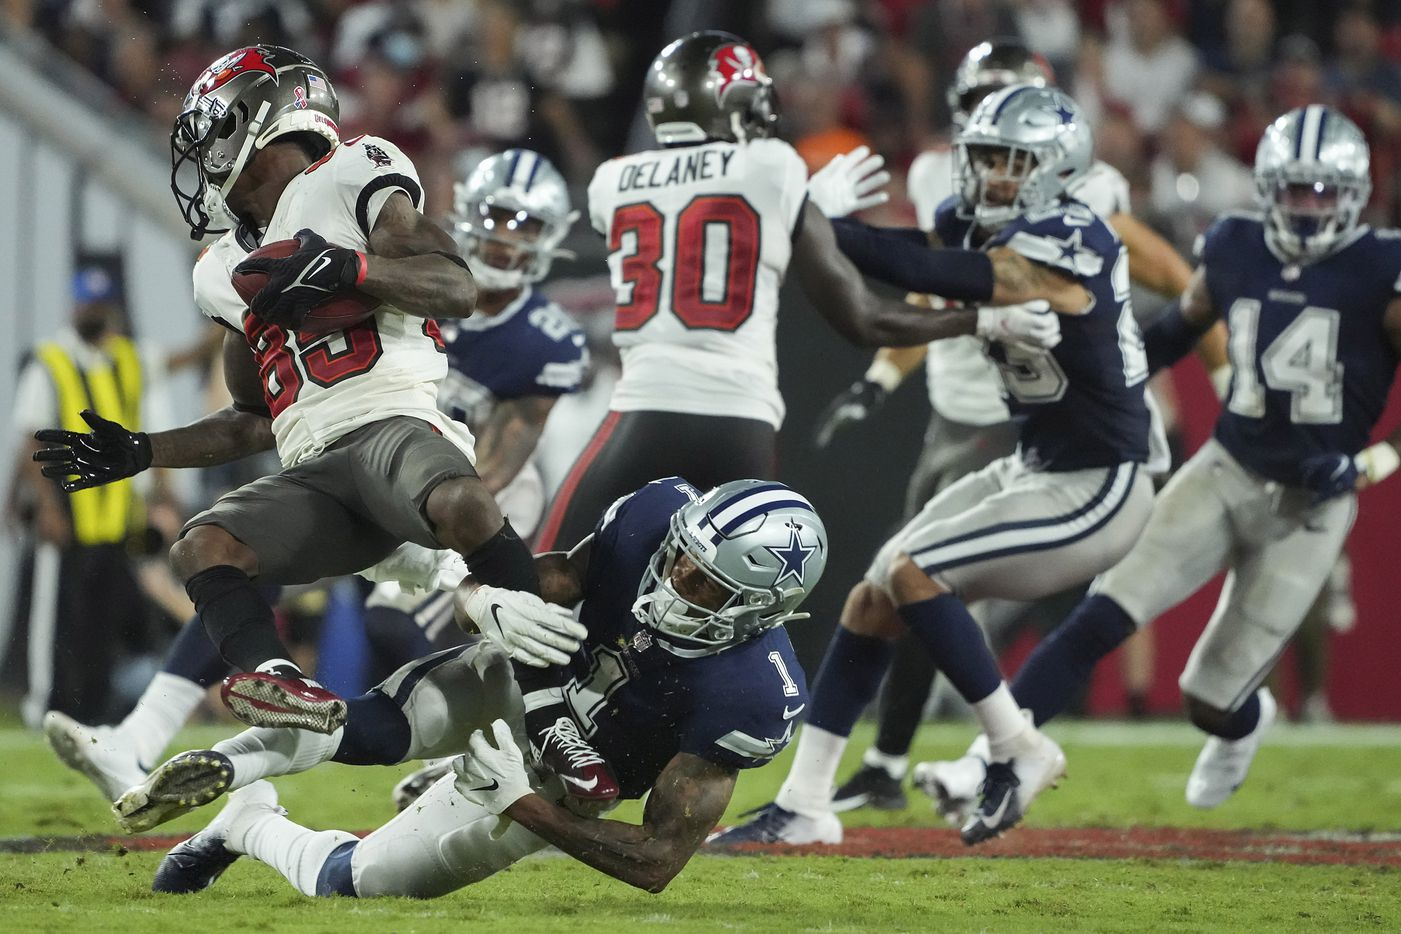 Dallas Cowboys wide receiver Cedrick Wilson (1) brings down Tampa Bay Buccaneers wide receiver Jaydon Mickens (85) on a punt return during the second half of an NFL football game at Raymond James Stadium on Thursday, Sept. 9, 2021, in Tampa, Fla. The  Buccaneers won the game 31-29. (Smiley N. Pool/The Dallas Morning News)